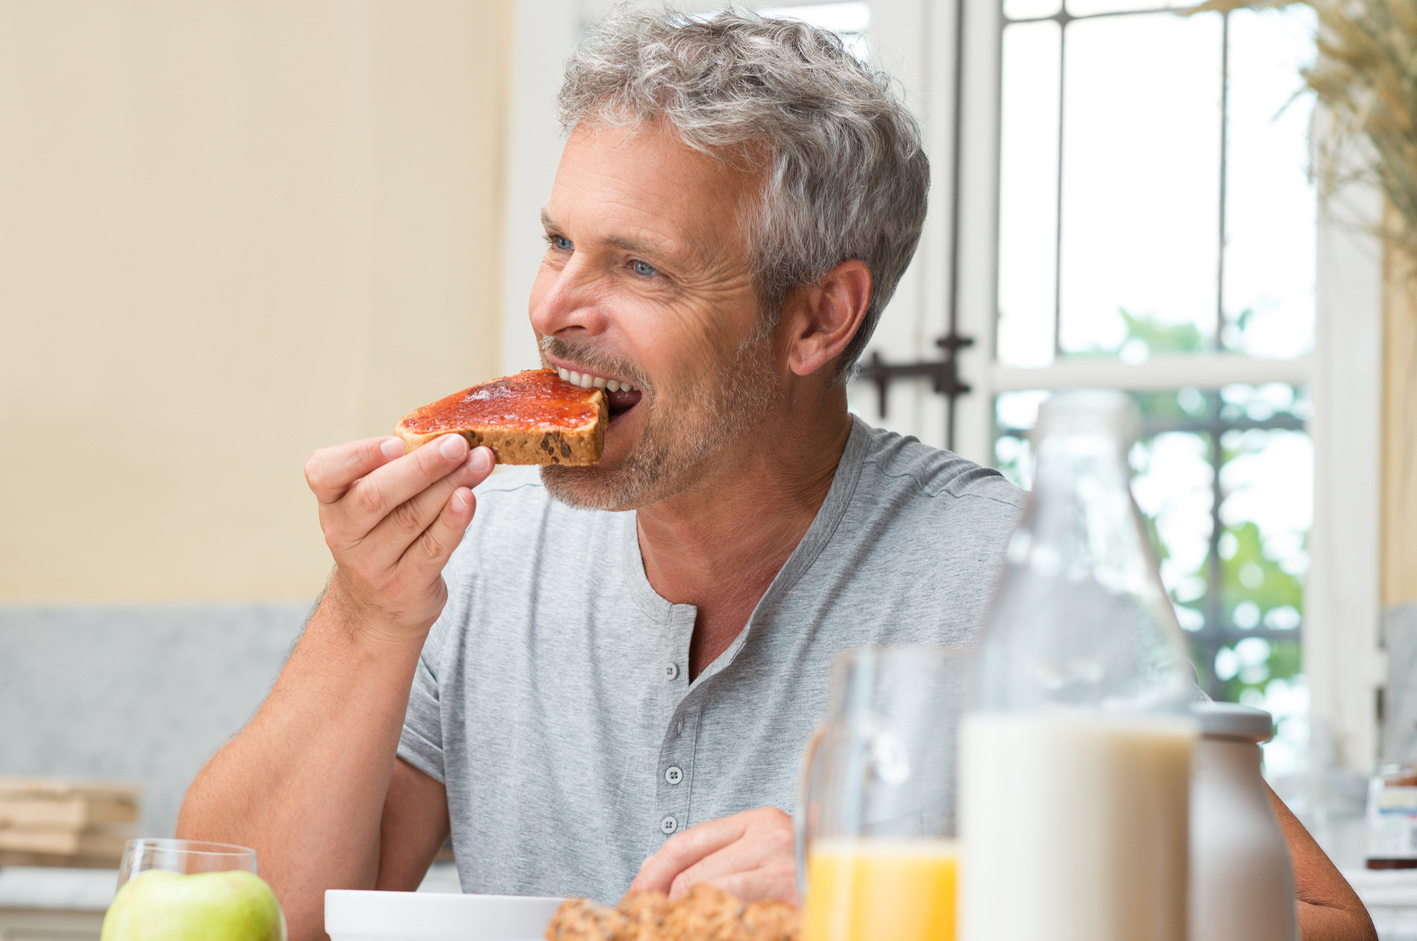 Mature Man Eating A Fresh Slice Of Bread With Jam For Breakfast